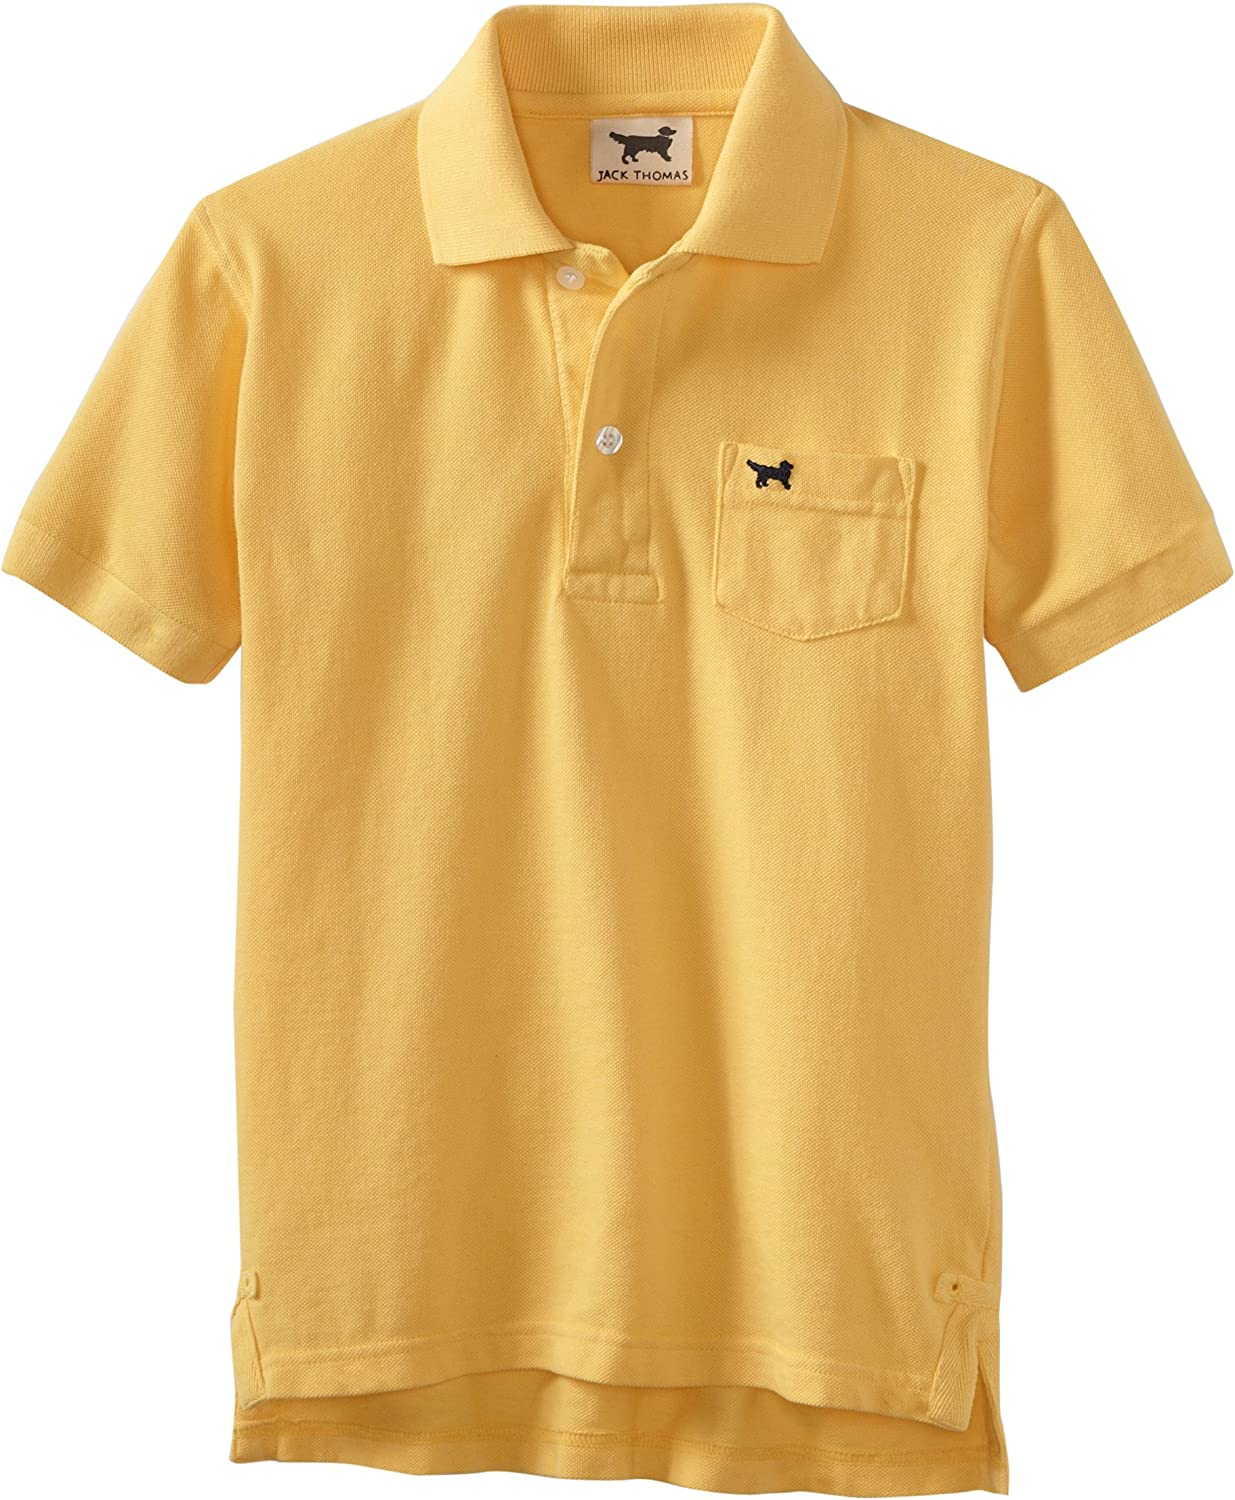 Wes and Willy Little Boys' Short Sleeve Polo